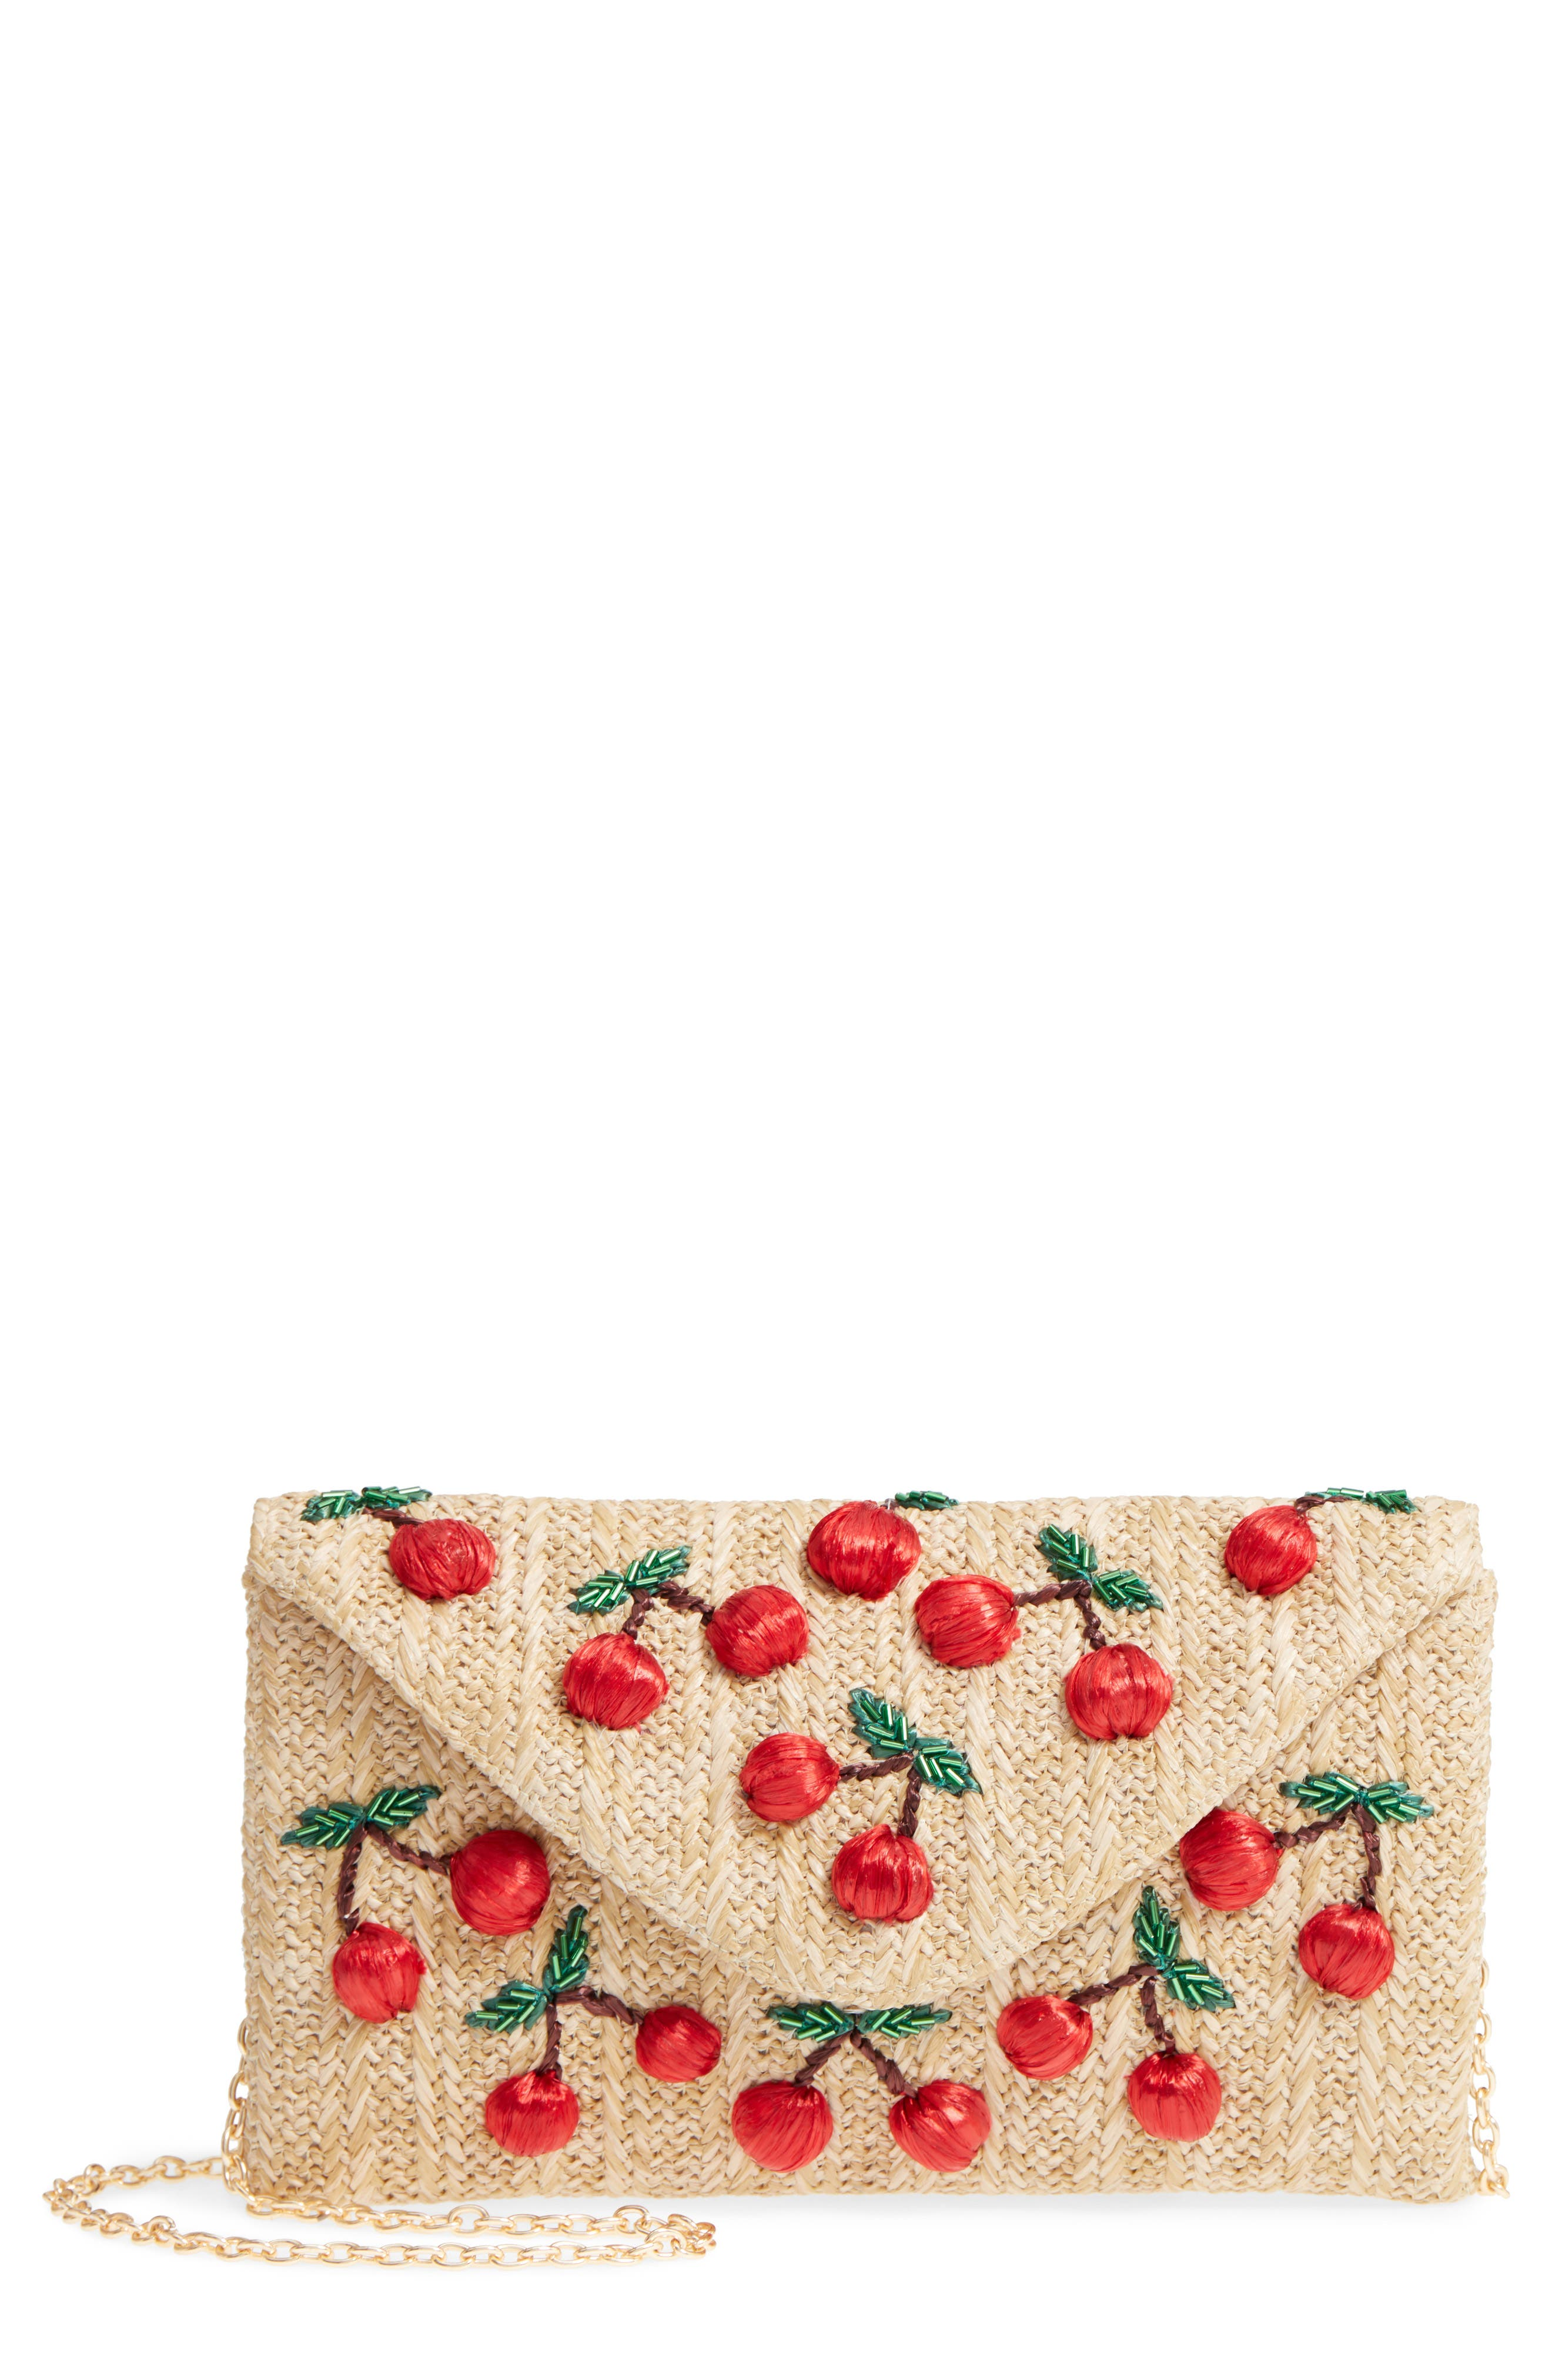 Cherry Embellished Straw Envelope Clutch,                         Main,                         color, Natural